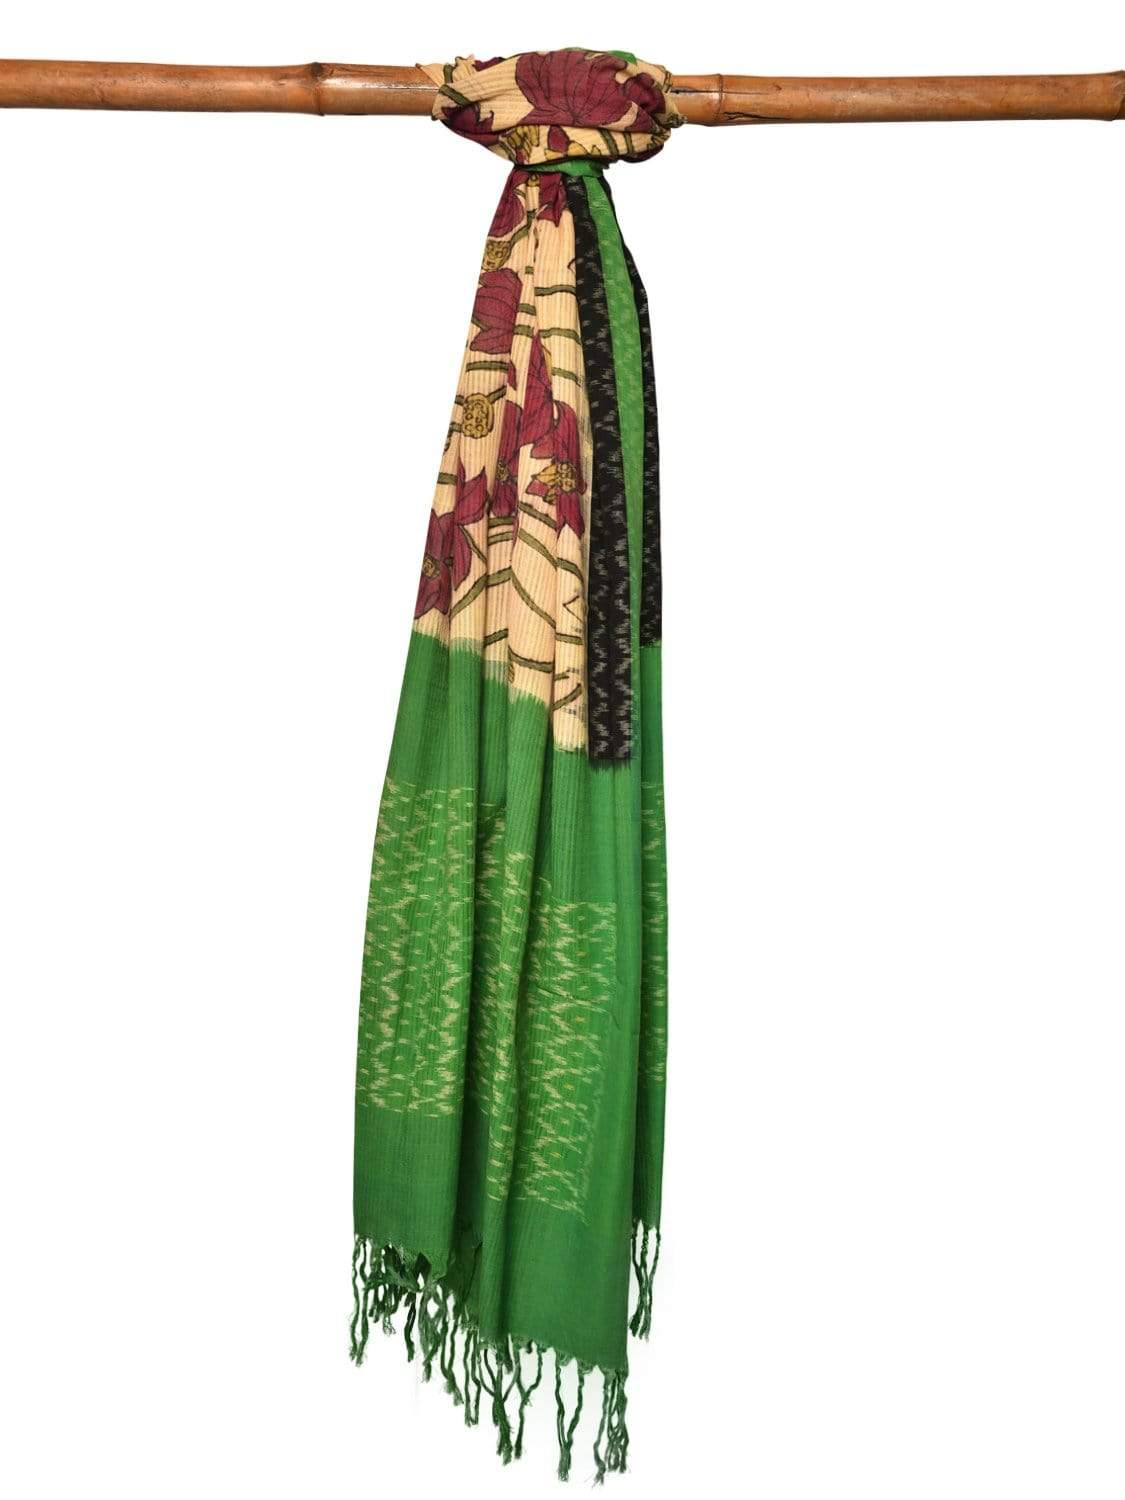 Cream and Green Kalamkari Hand Painted Ikat Cotton Handloom Dupatta with Lotus Flowers Design ds1972